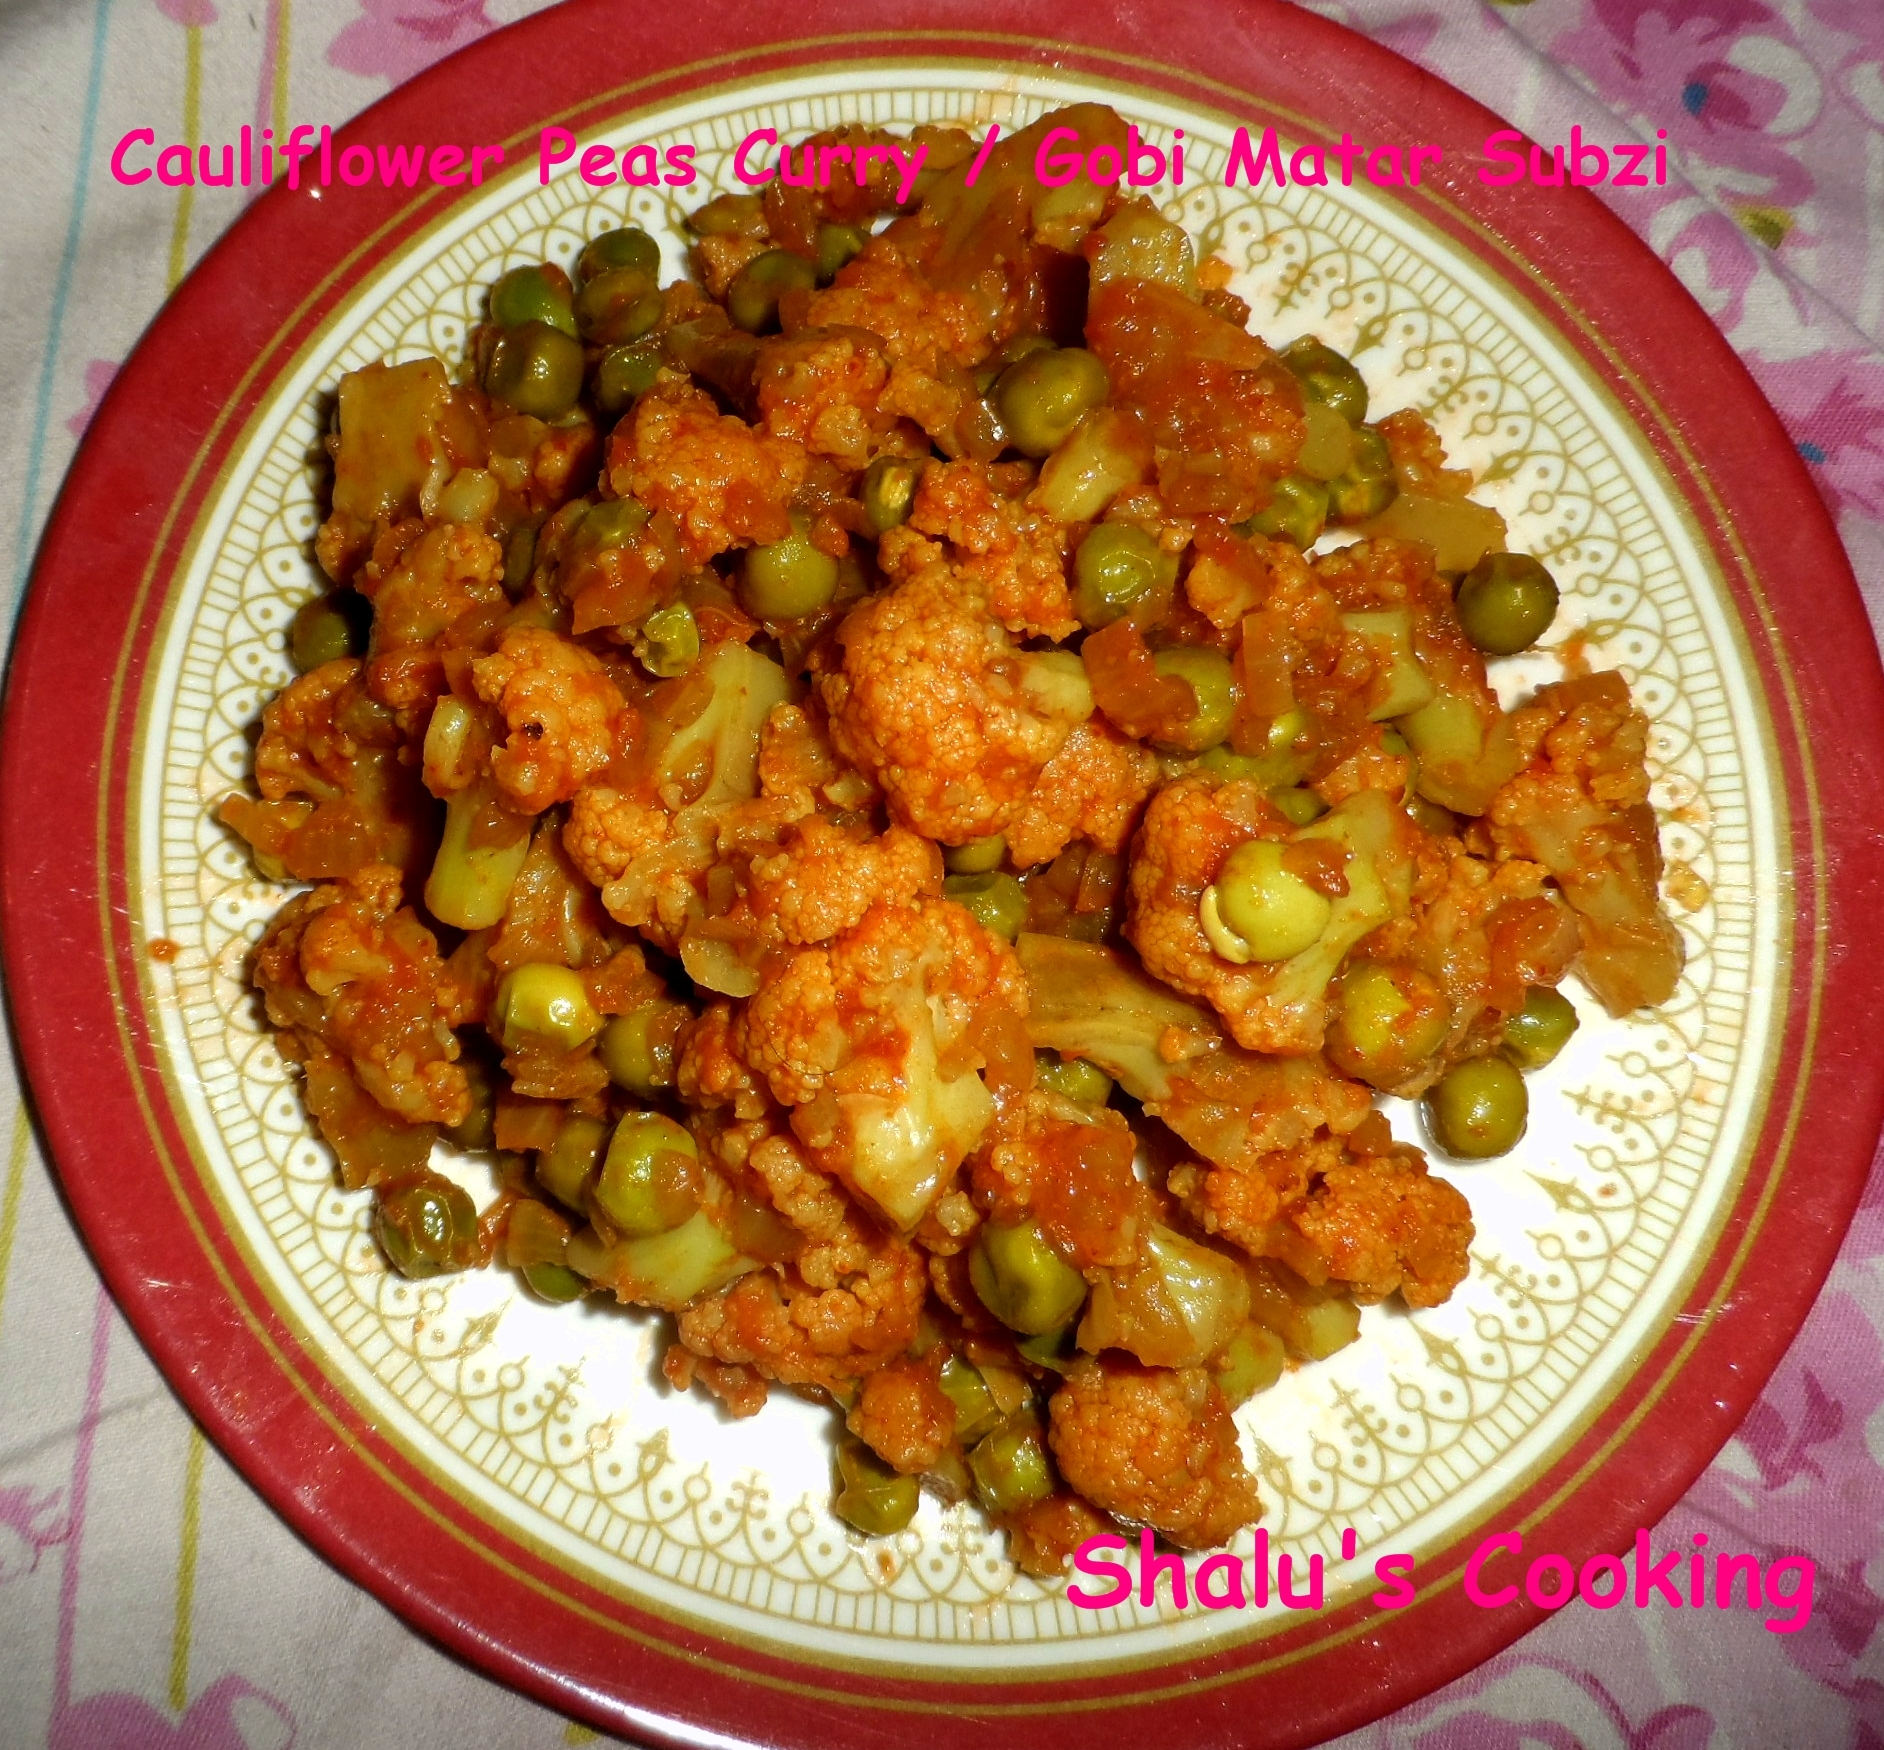 Cauliflower Peas Curry / Gobi Matar Subzi